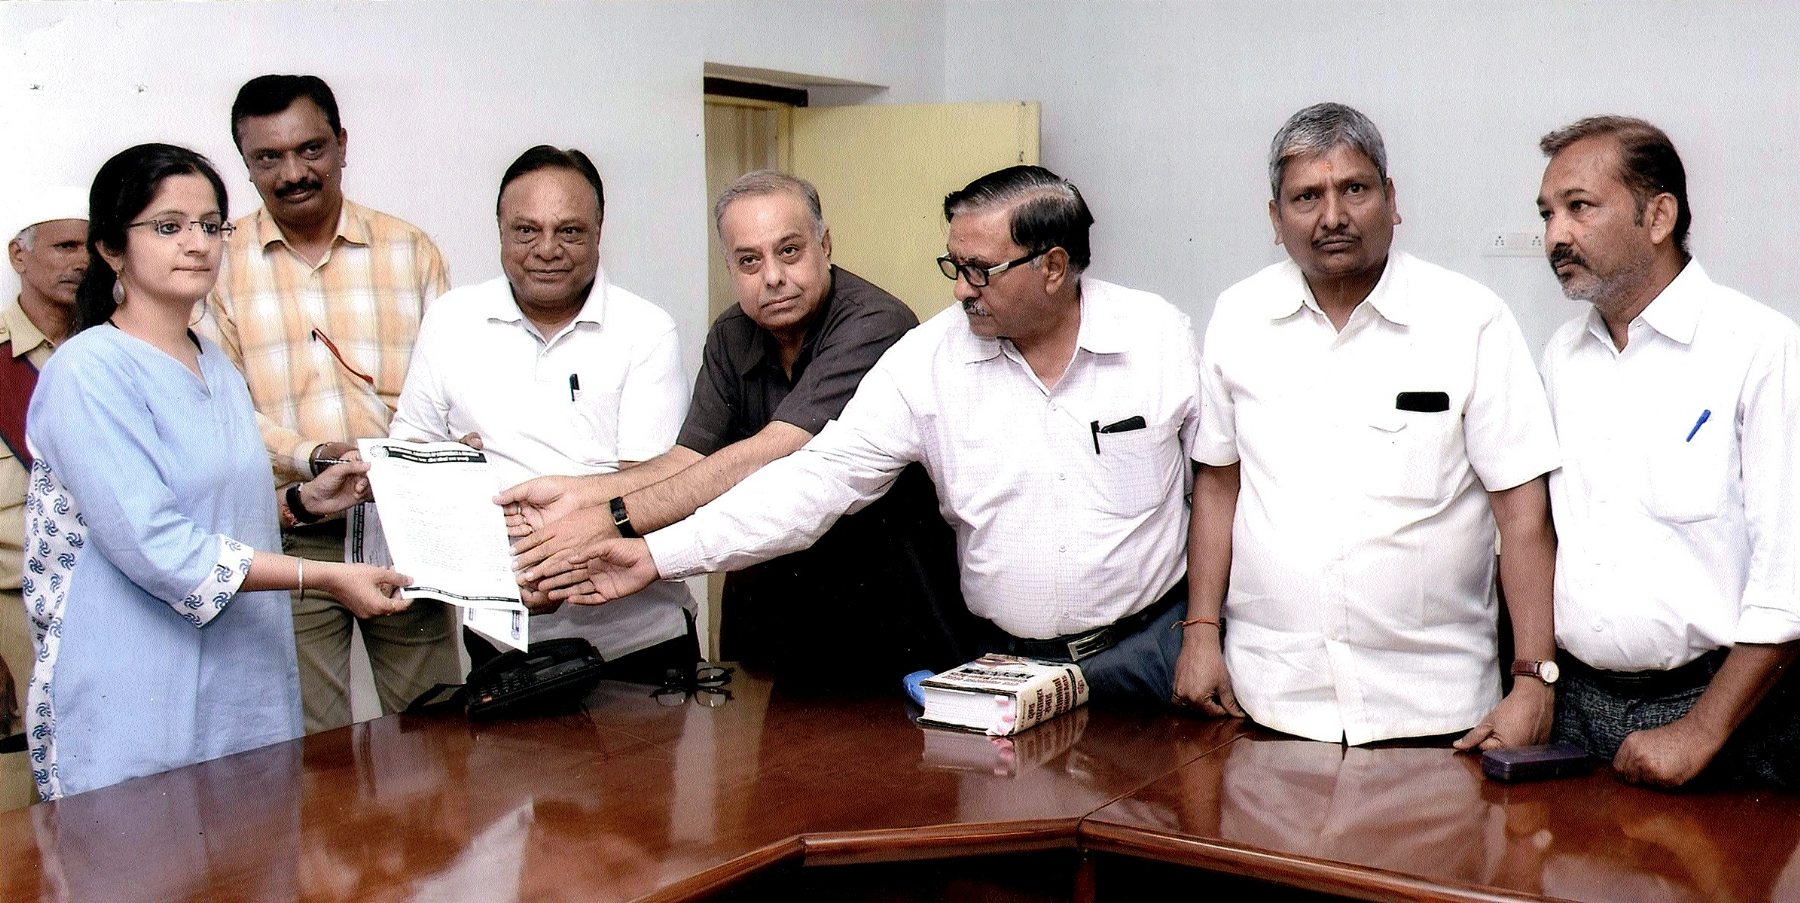 Delegation of MCCI meets Collector, demands fair action in building collapse matter